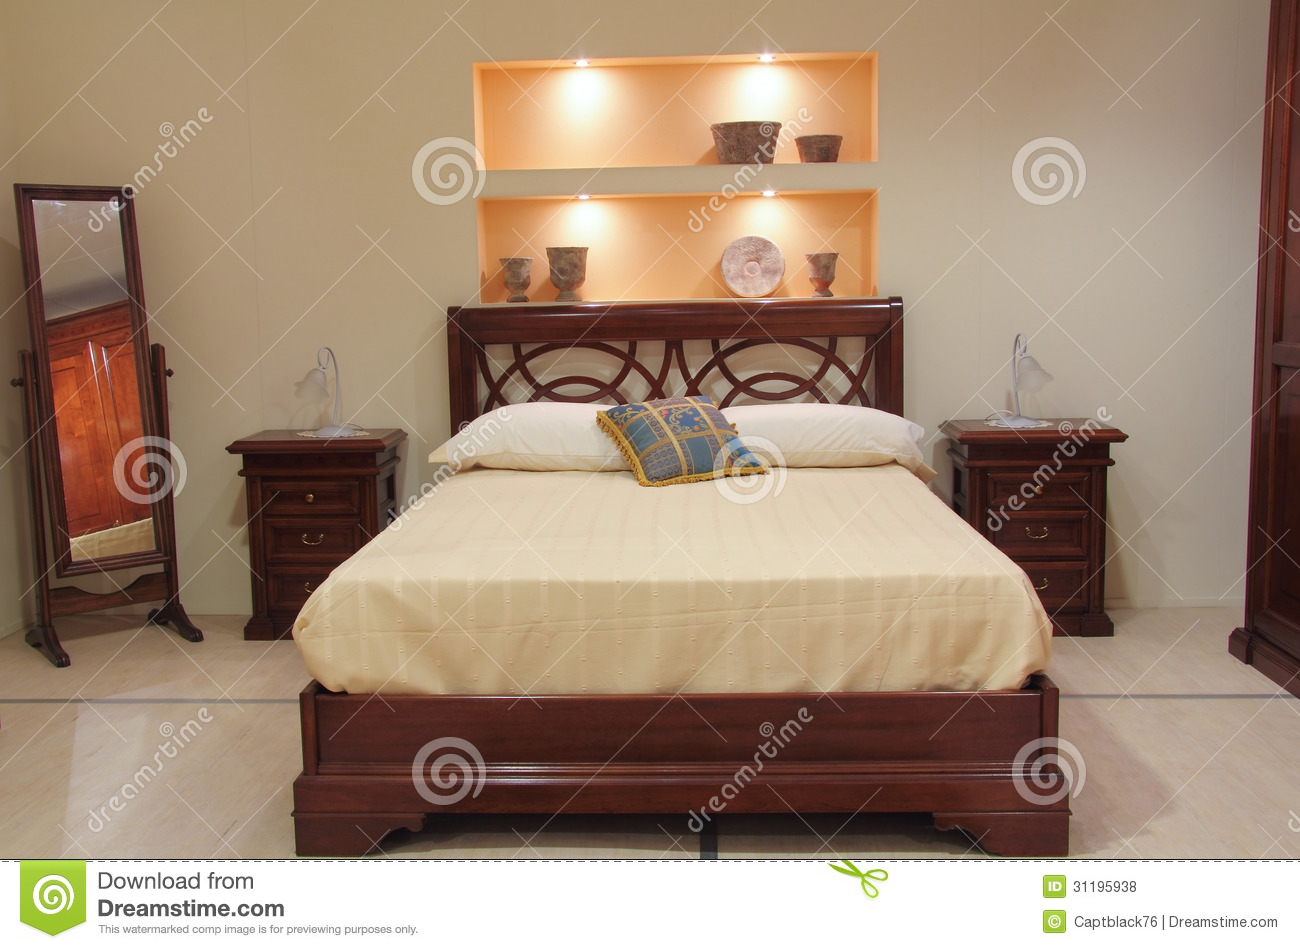 Ouedkniss Meuble Chambre A Coucher Kolea Raliss Com # Ouedkniss Meuble